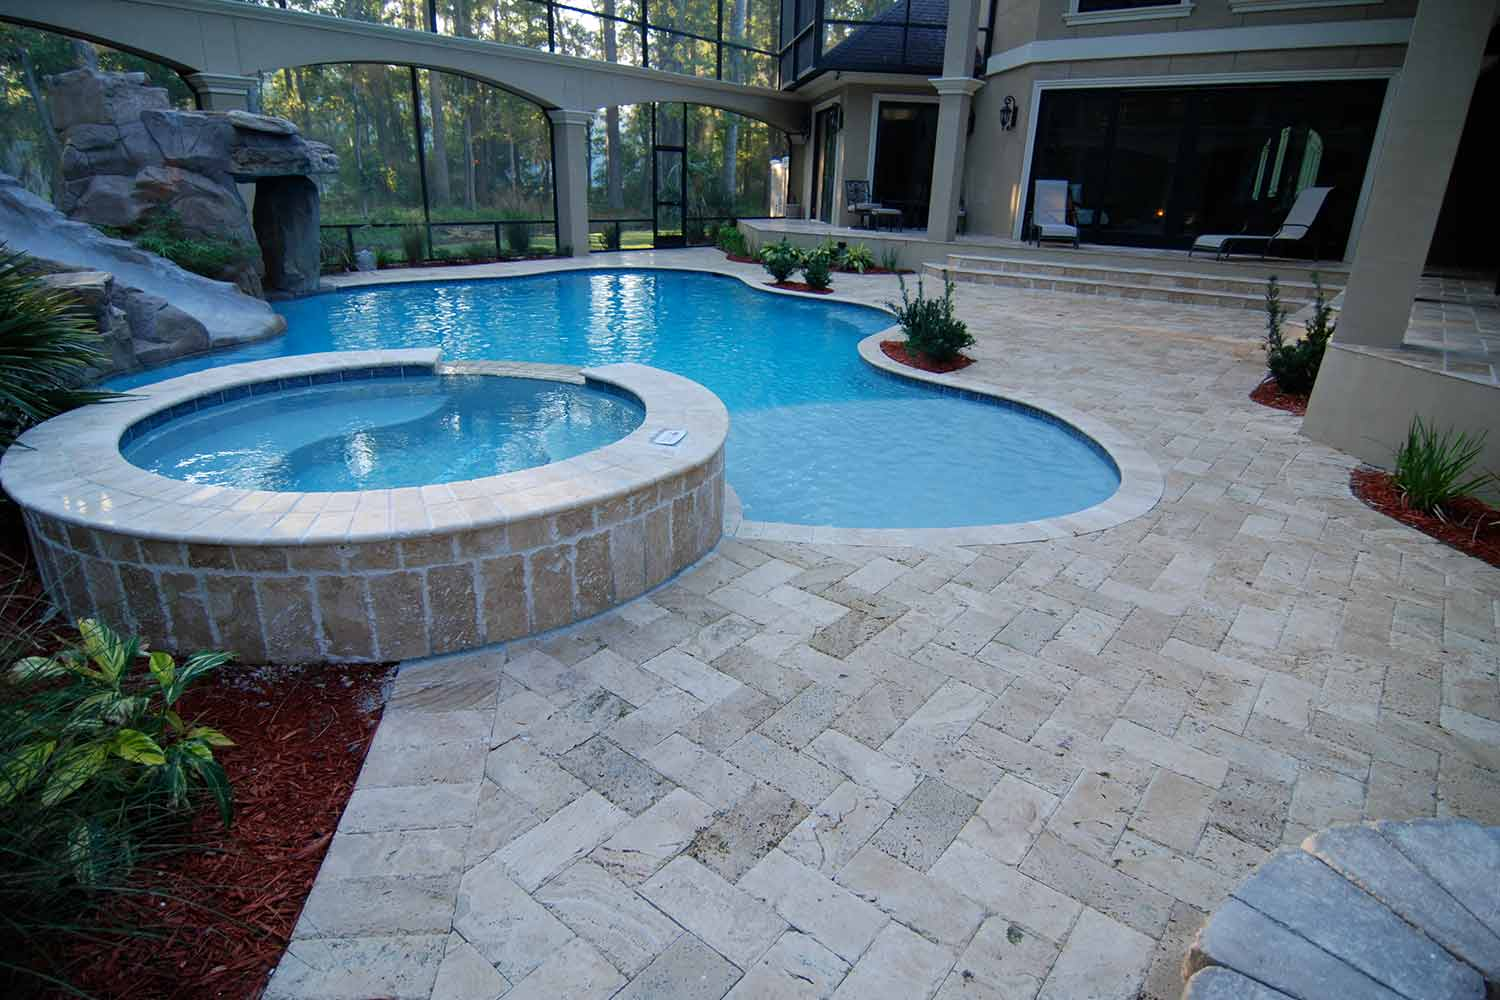 Pervious Pool Deck Paver Hilton Head Island SC